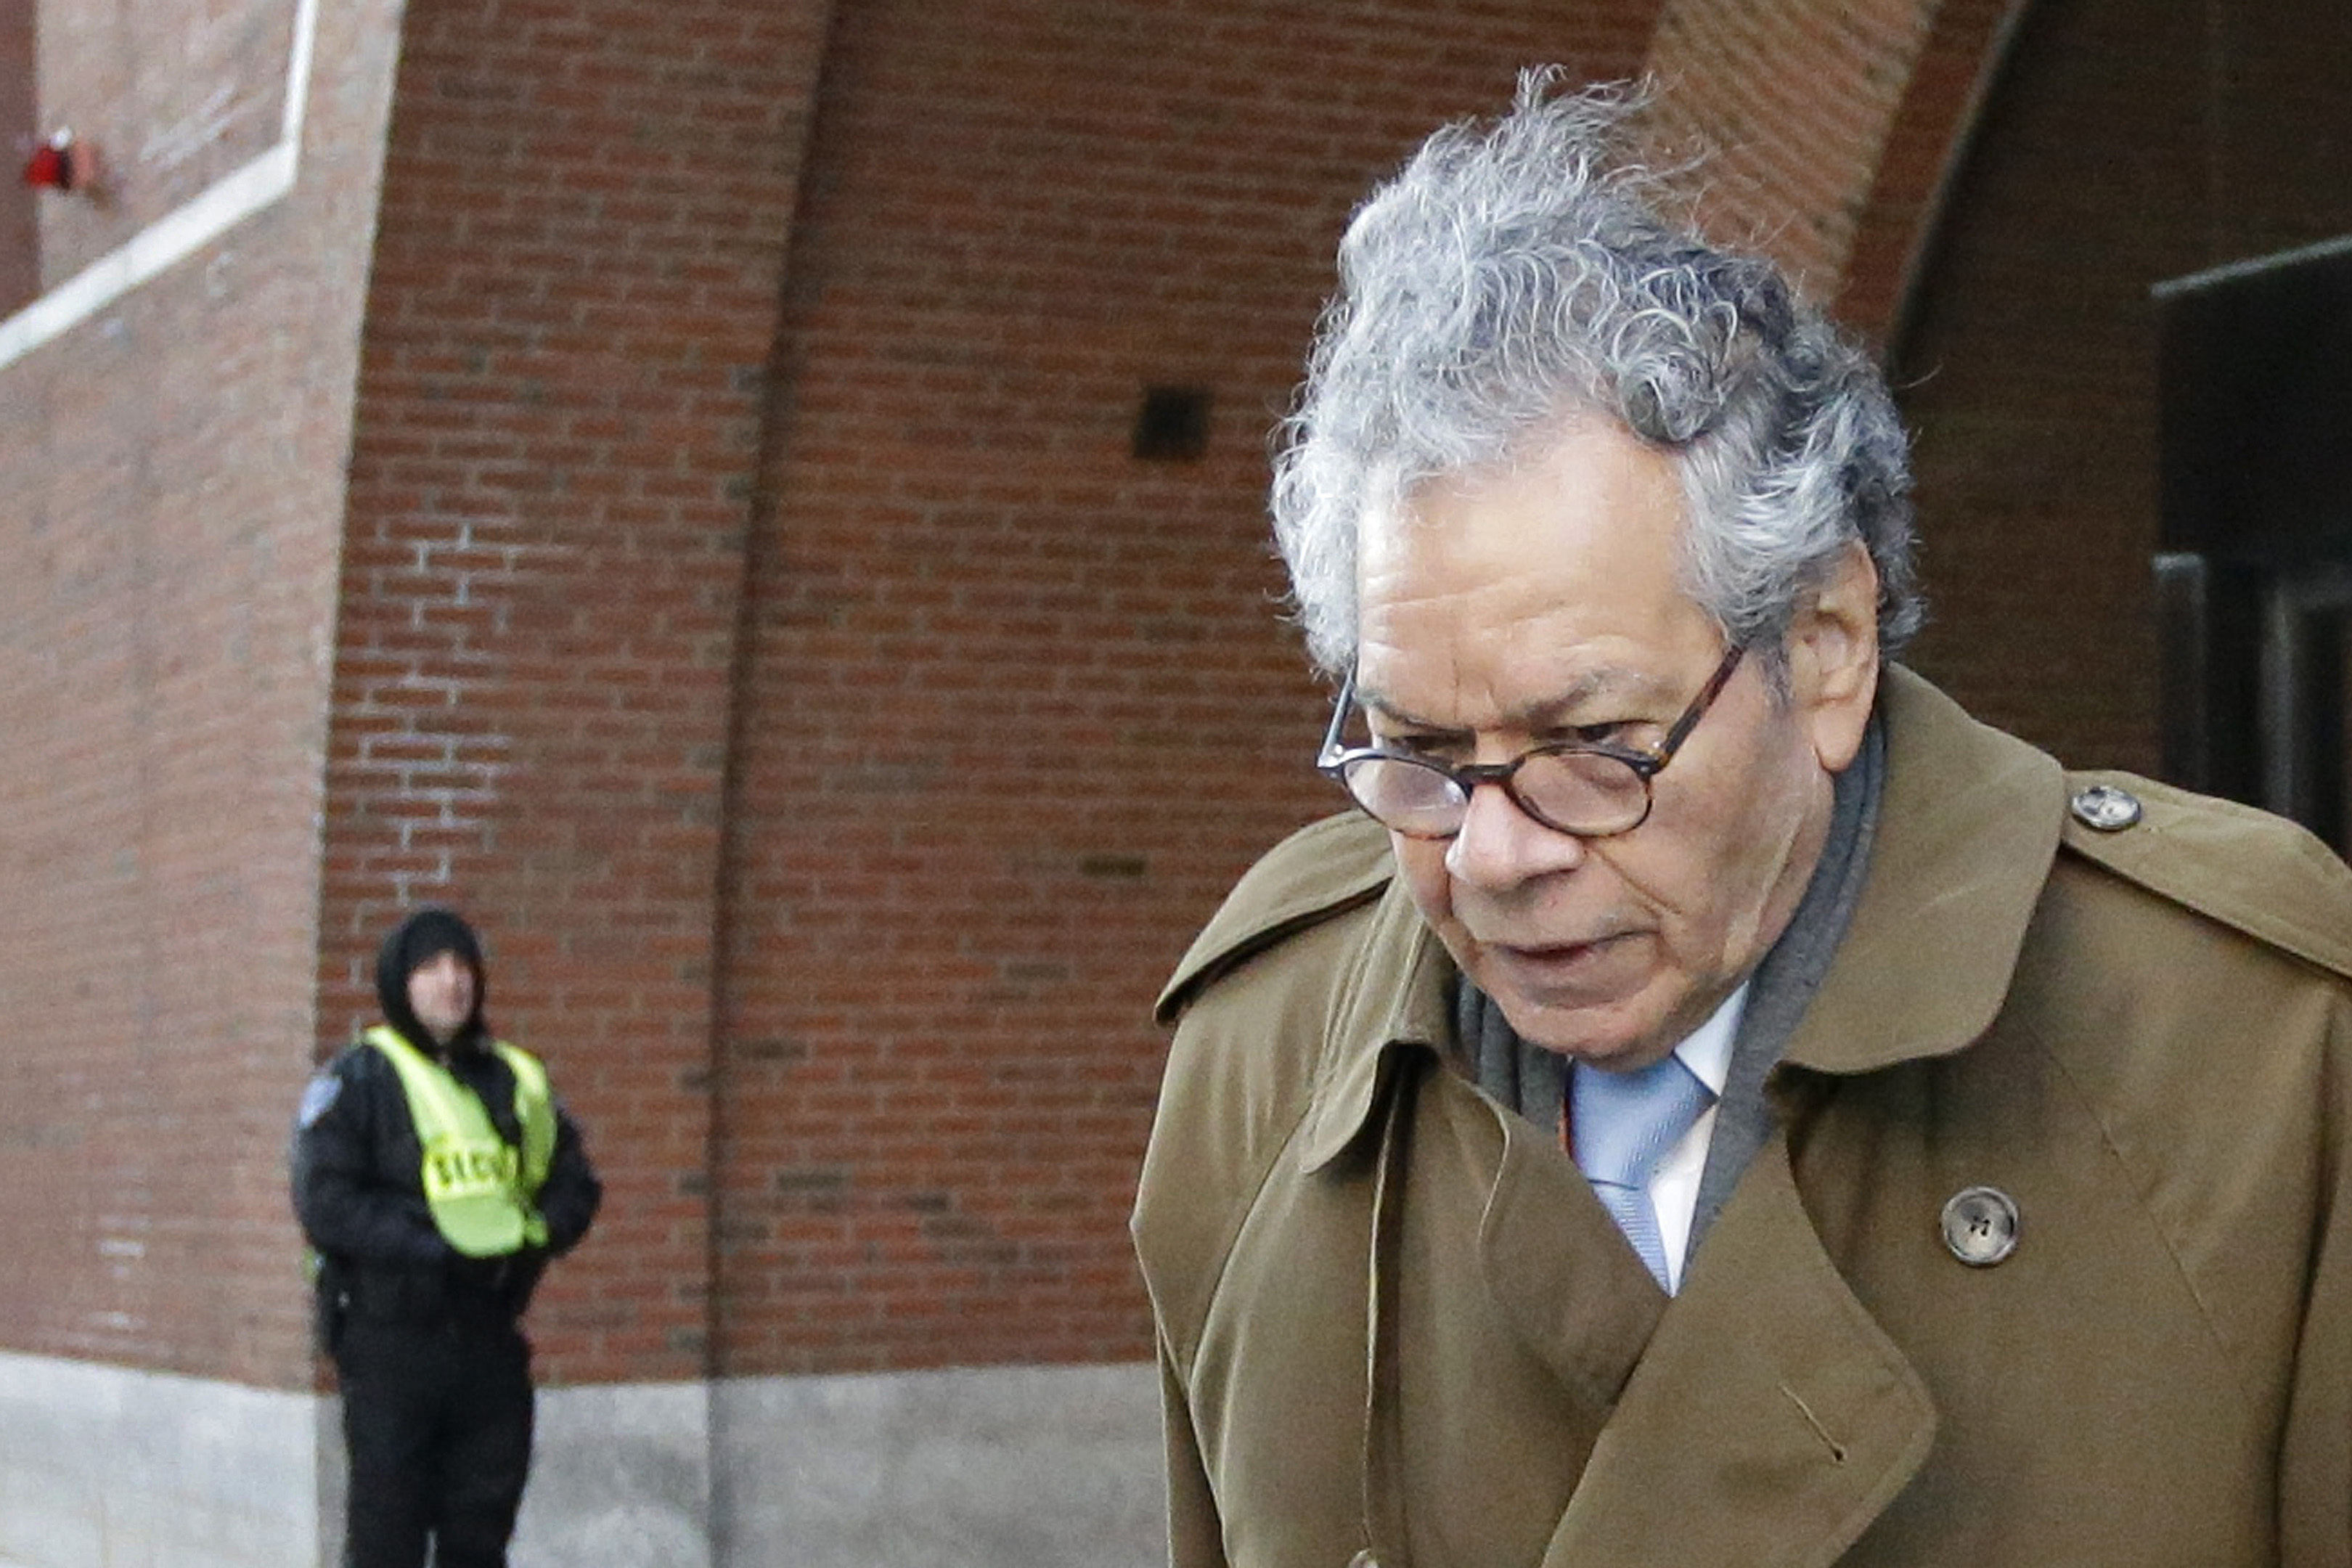 Insys Therapeutics Pushed Opioid With Bribes And Lies, Prosecutors Say